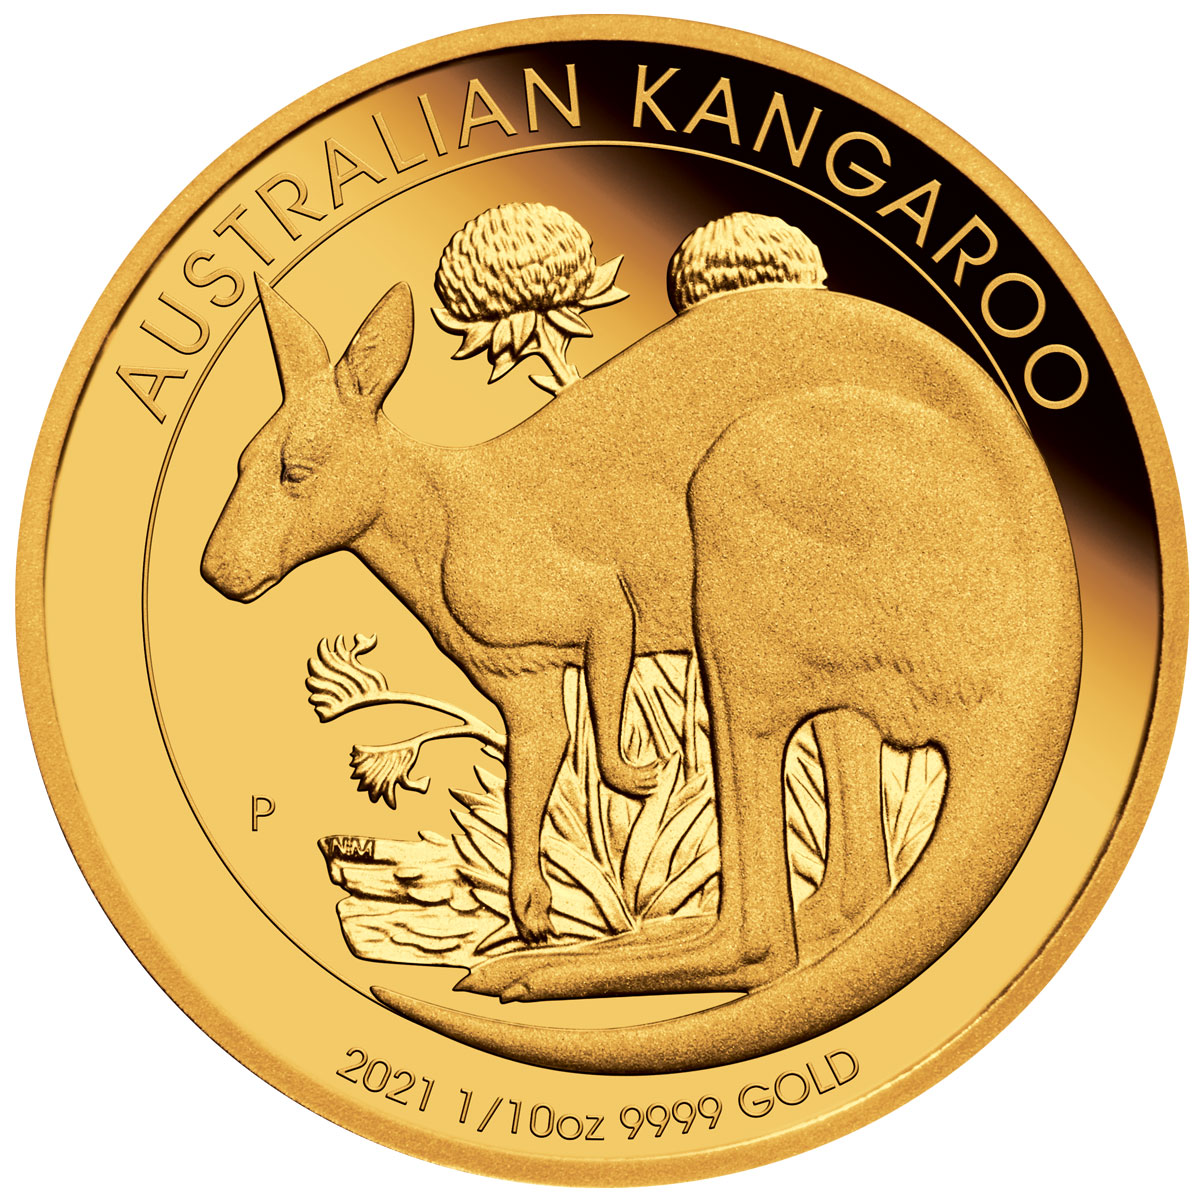 2021-P Australia Gold Kangaroo 1/10 oz Gold Proof $15 Coin GEM Proof OGP